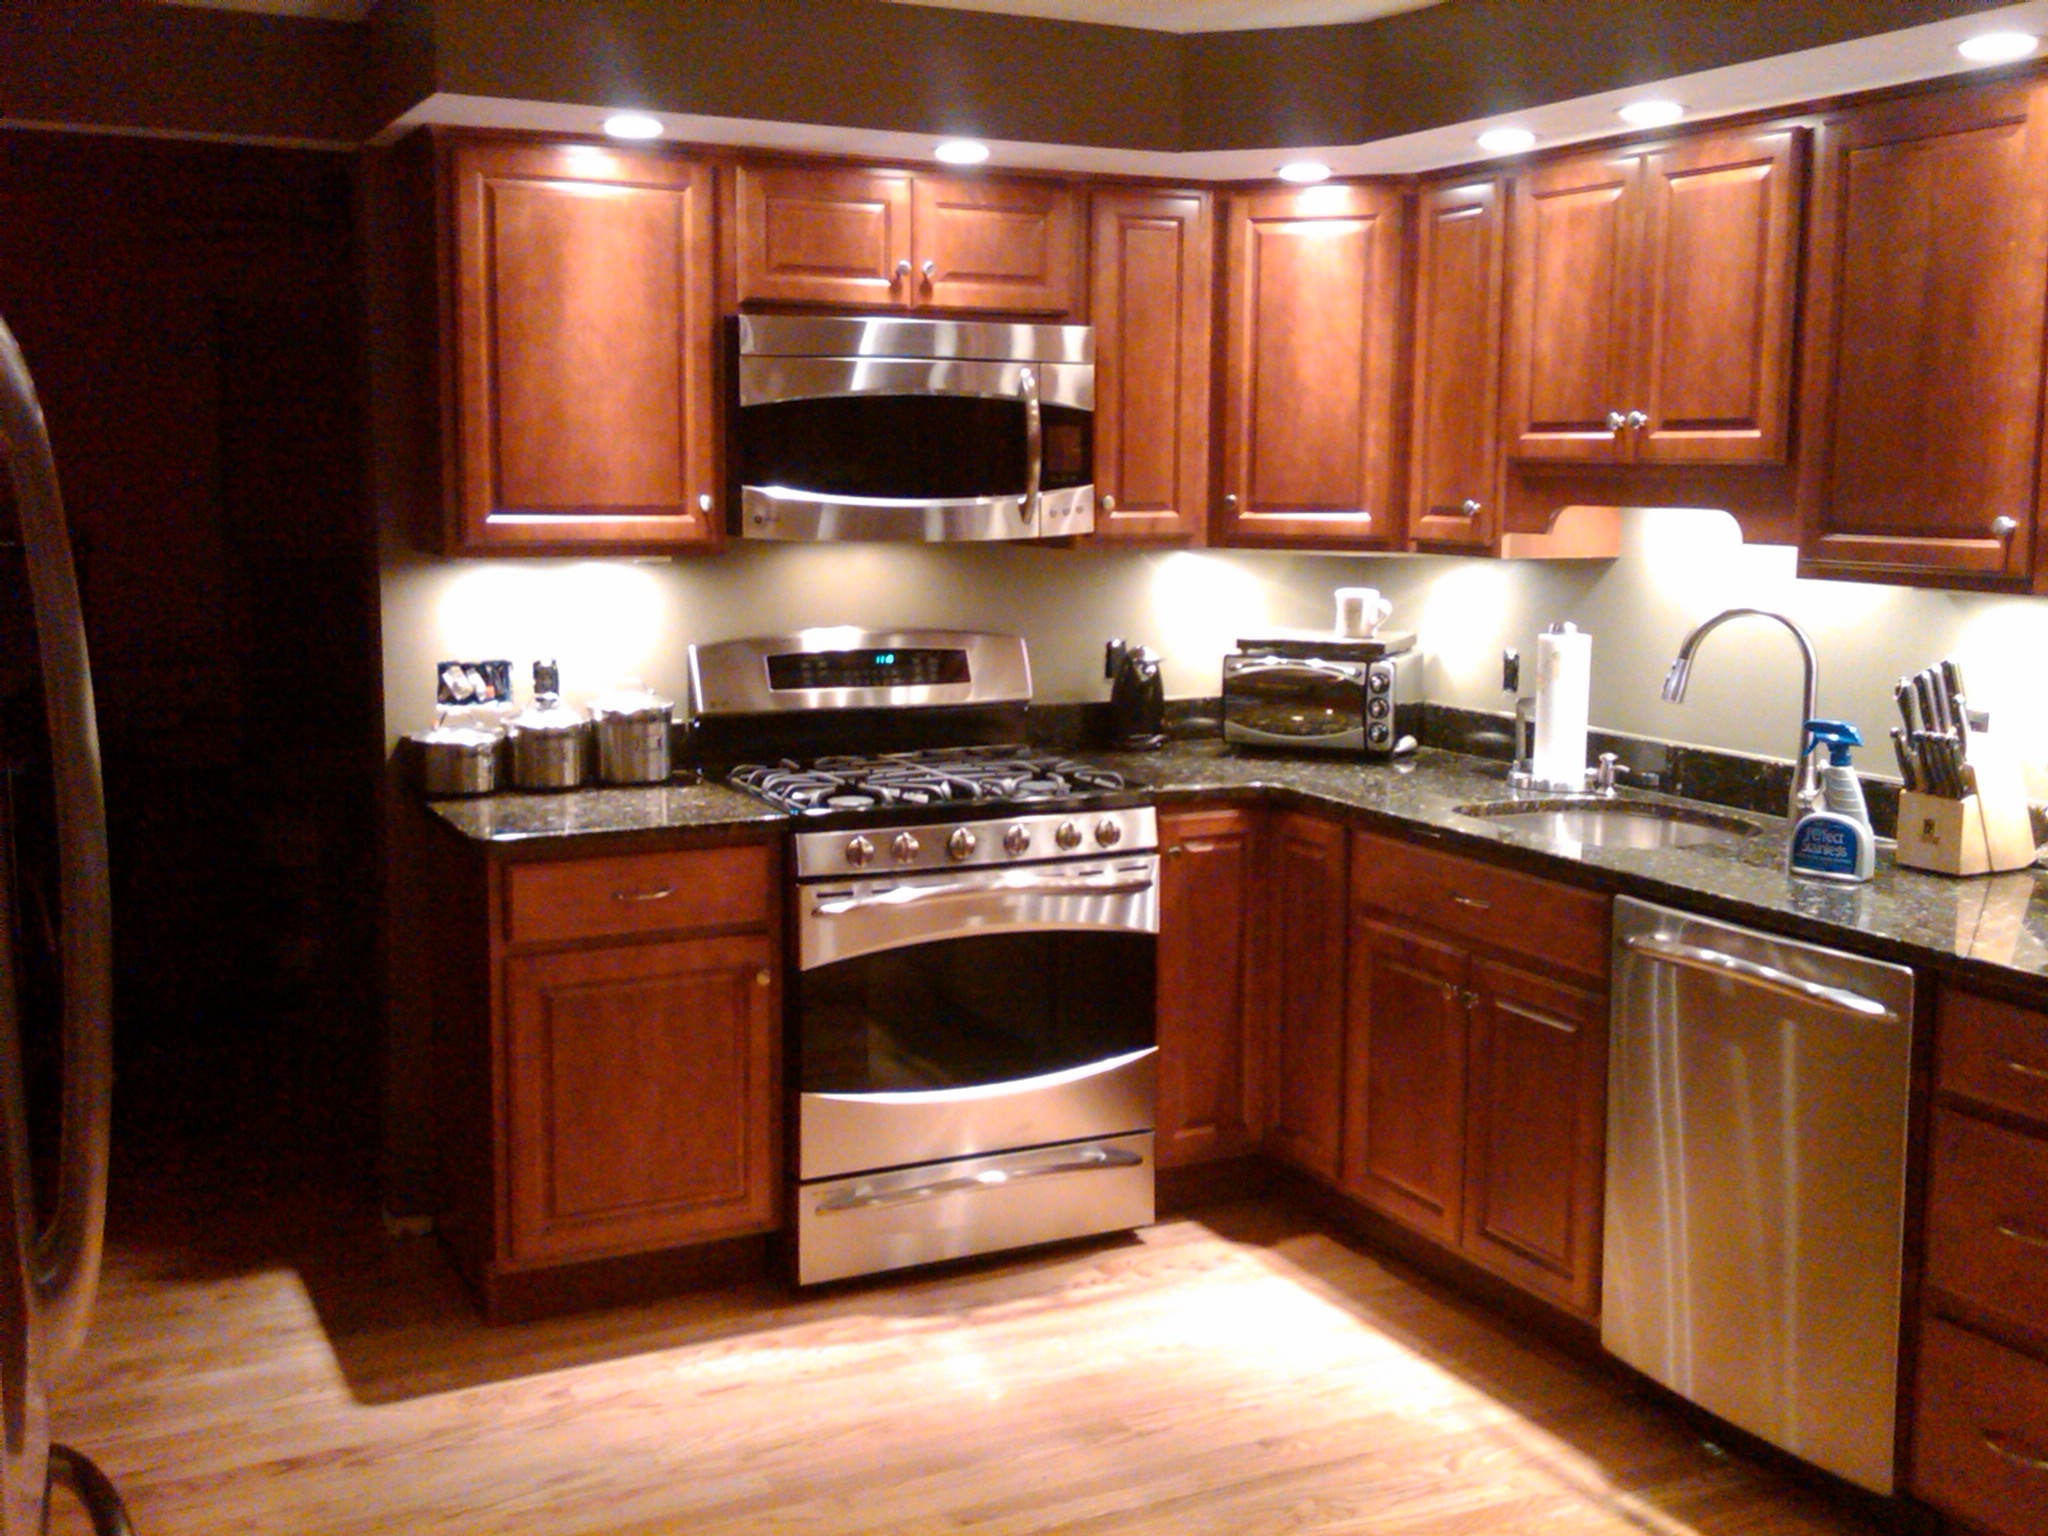 Kitchen Cabinets Recessed Lighting